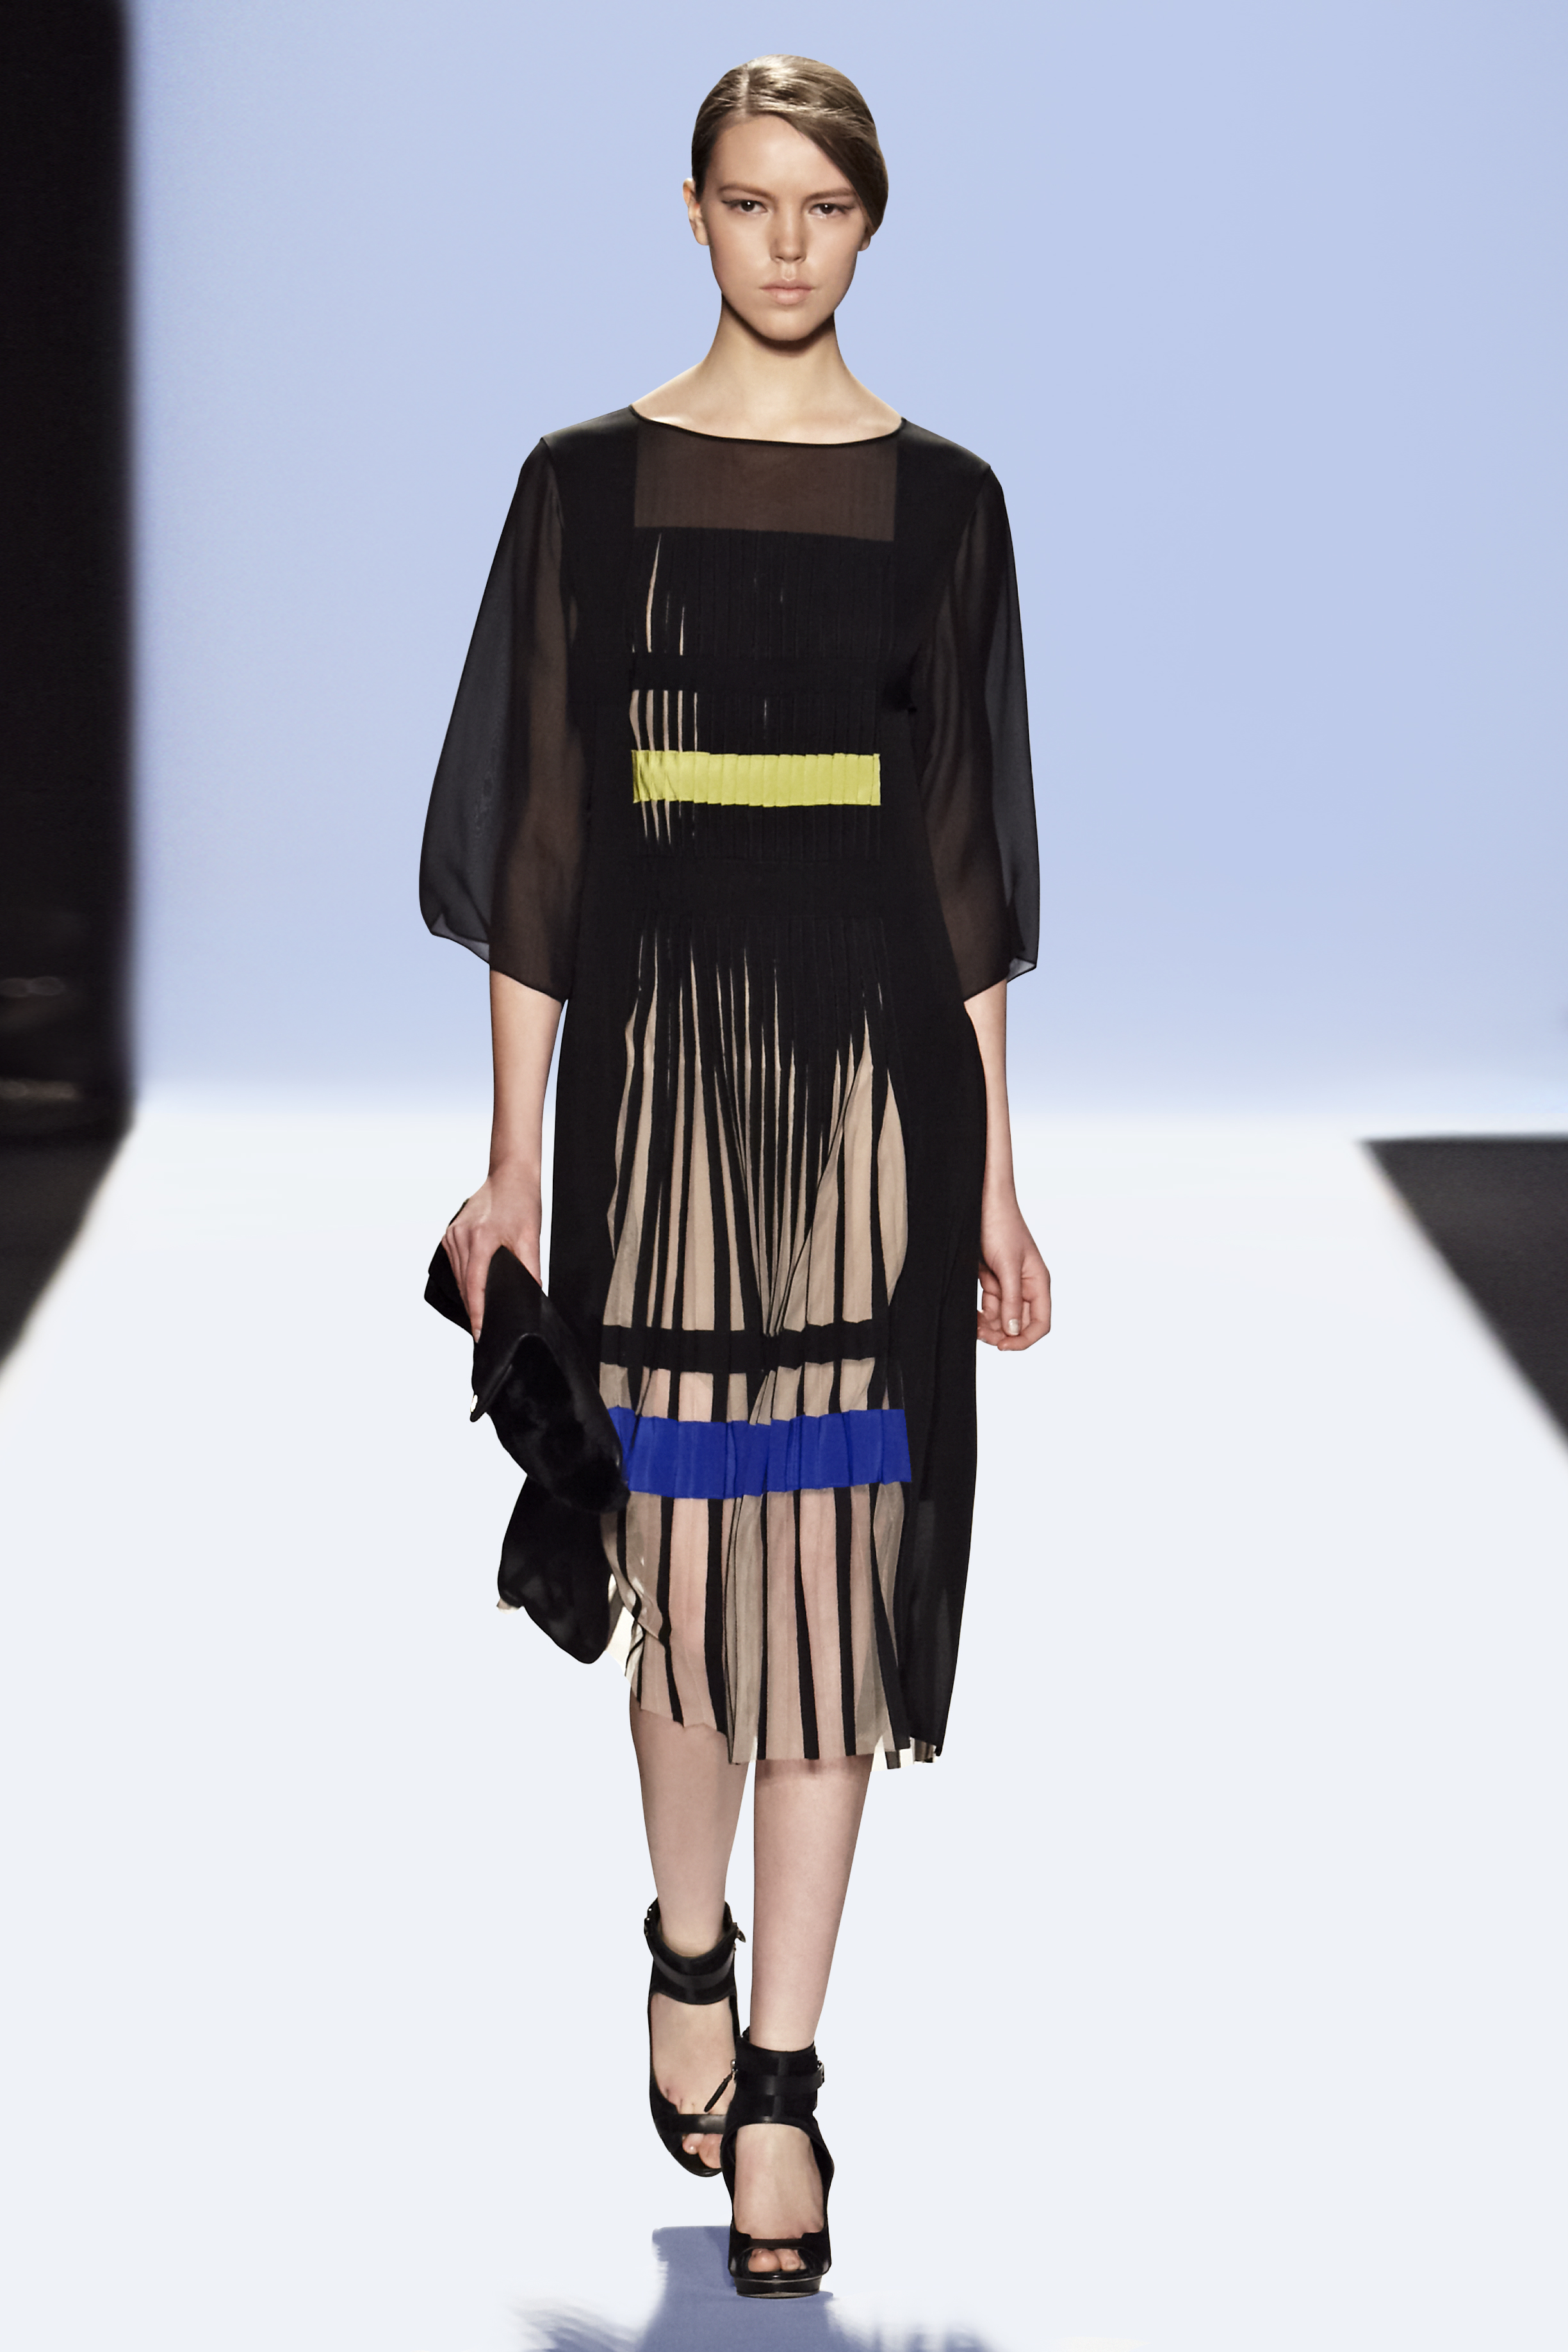 The pleats in this BCBG dress are typical of the details shown this fall